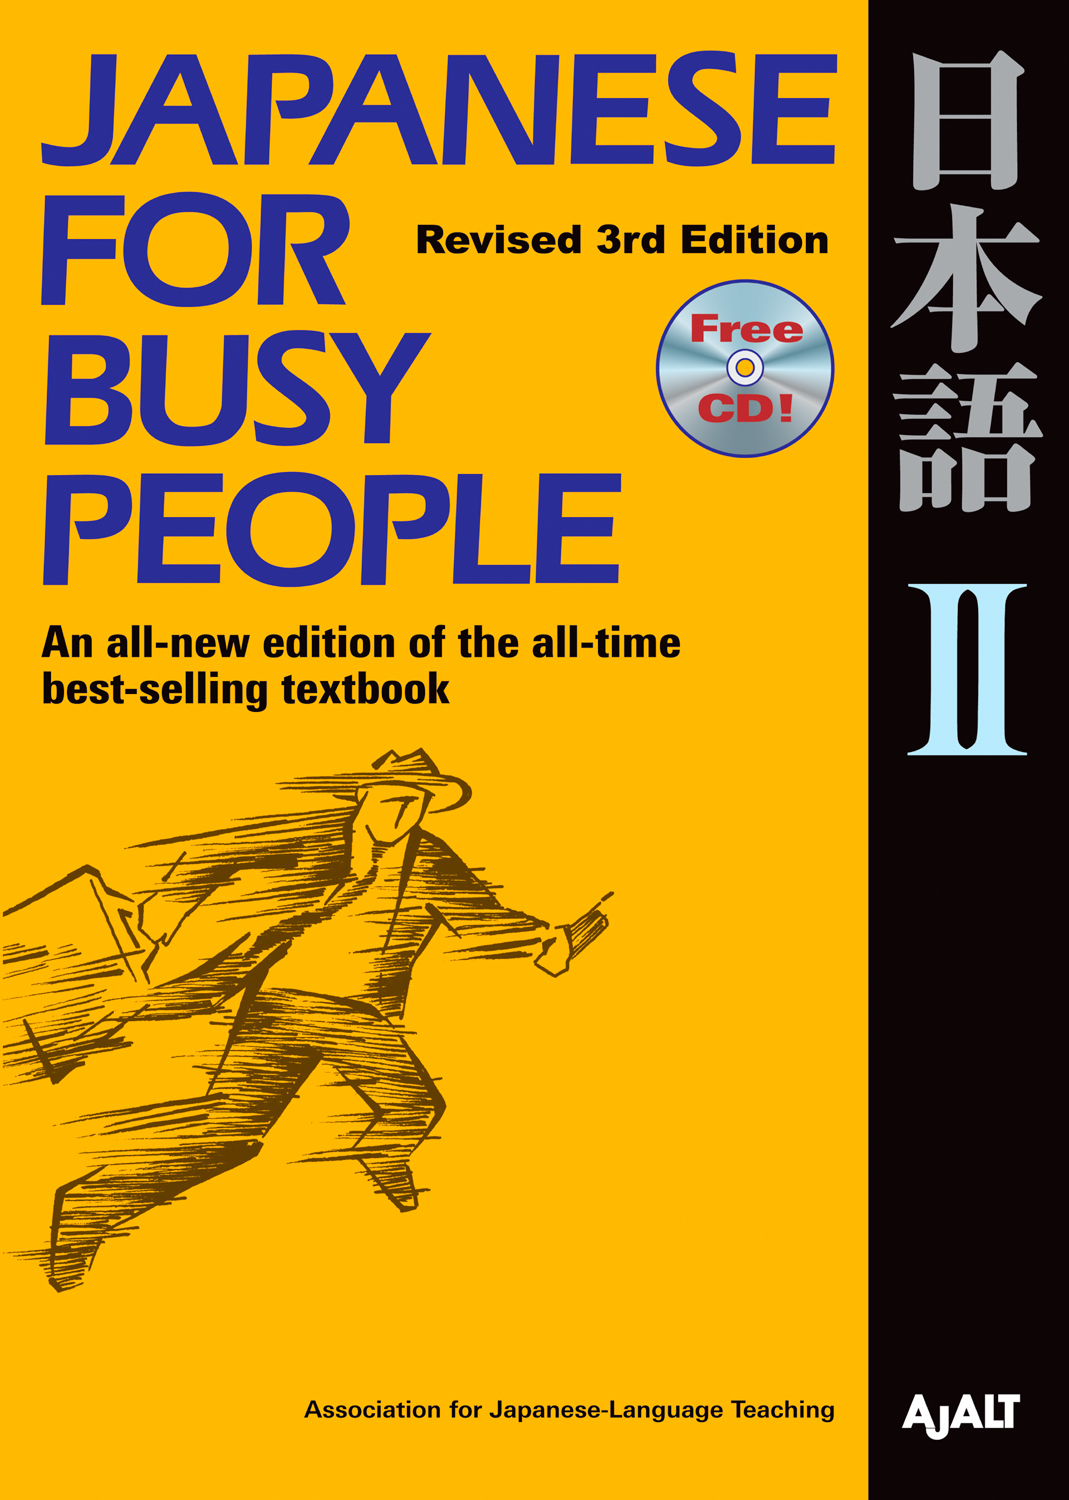 Cover of Japanese for Busy People Revised 3rd Edition II: An all-new edition of the all-time best-selling textbook.